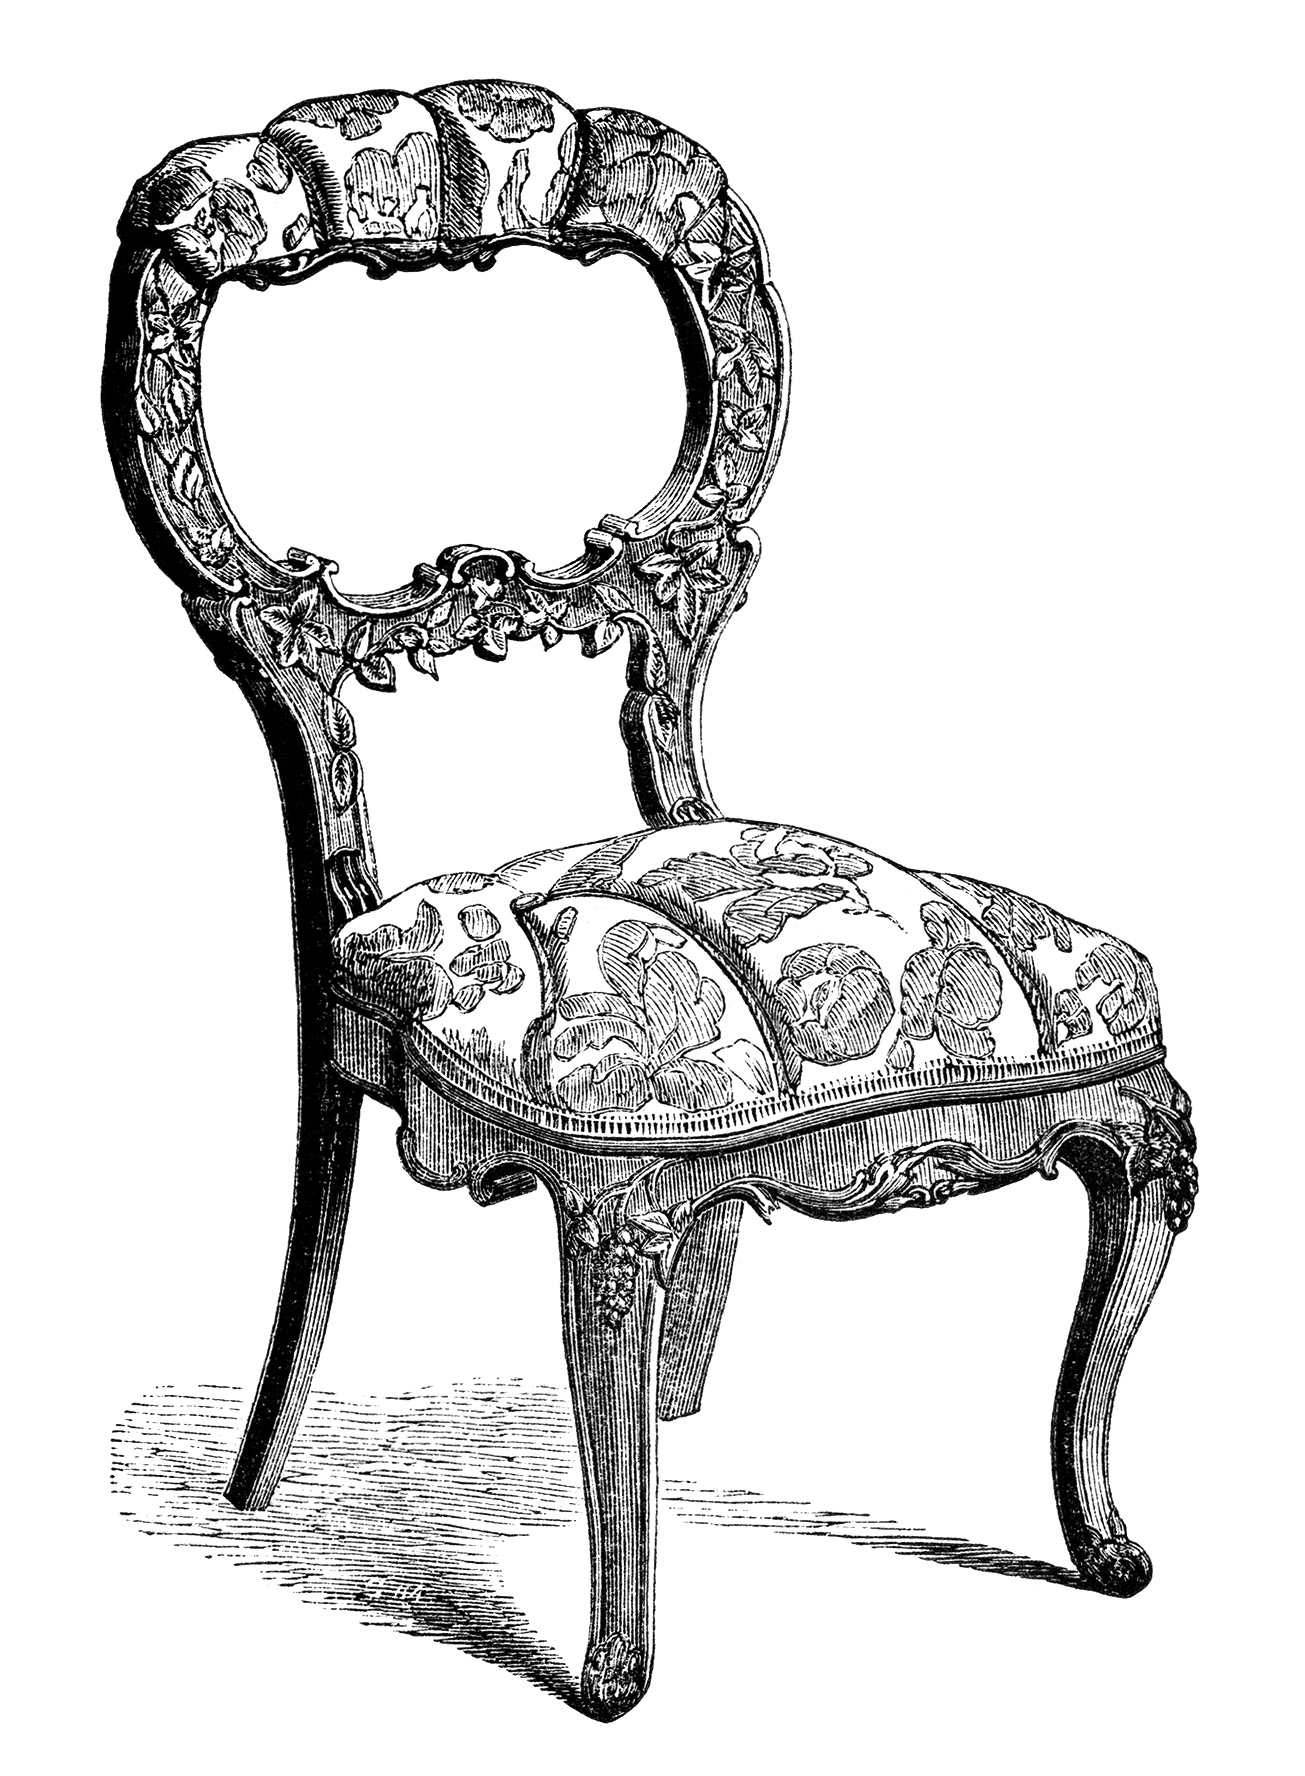 Vintage Chair Clip Art Black And White Clipart Antique Engraving Old Fashioned